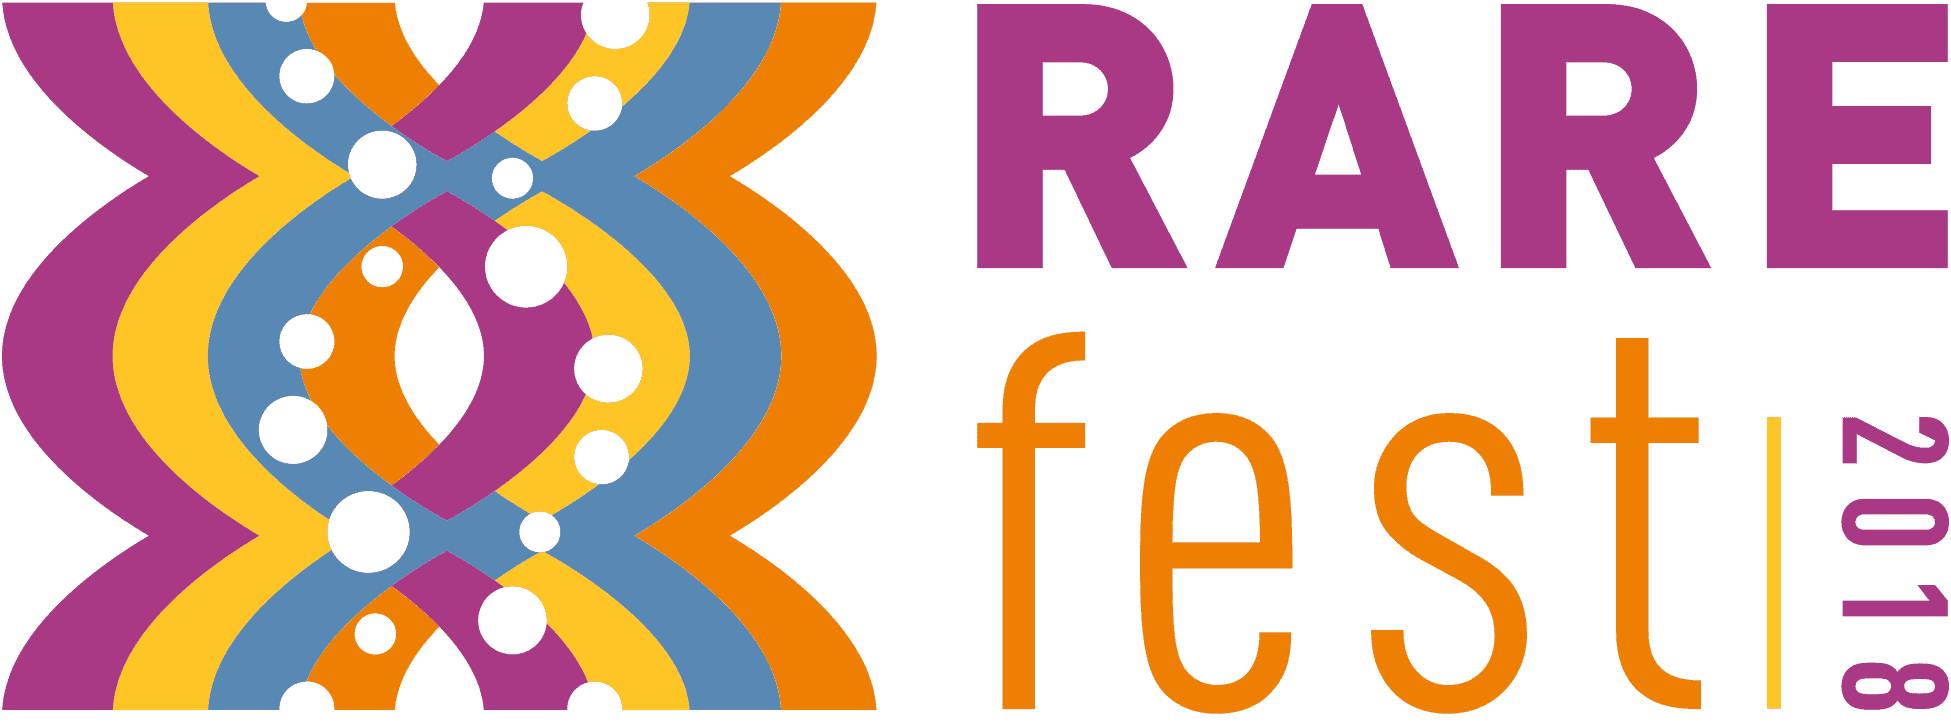 Cambridge Rare Disease Network - RAREfest | Friday 1